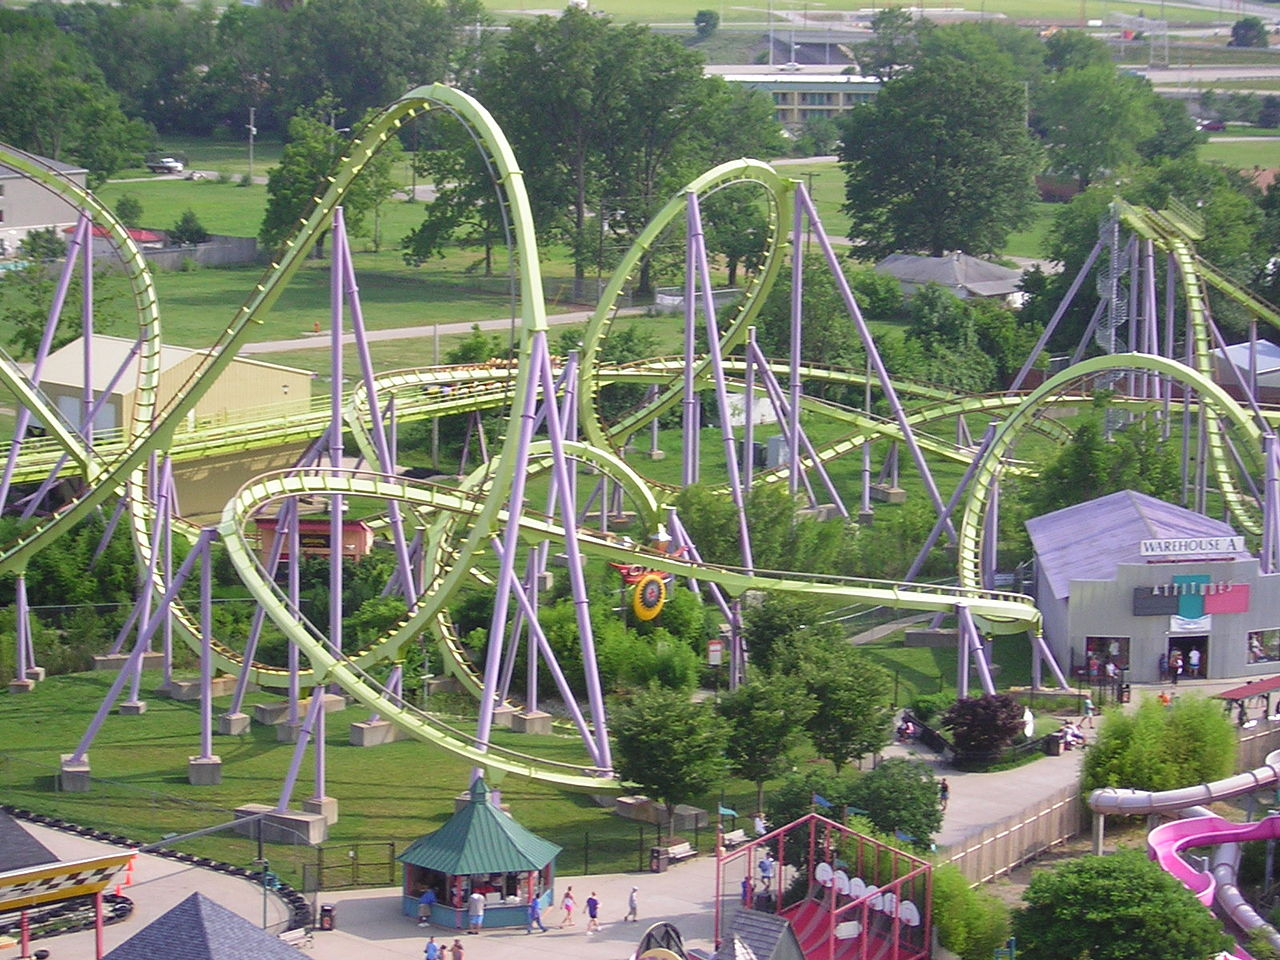 Amazing Destination to Visit In Kentucky's-The Kentucky Kingdom and Hurricane Bay